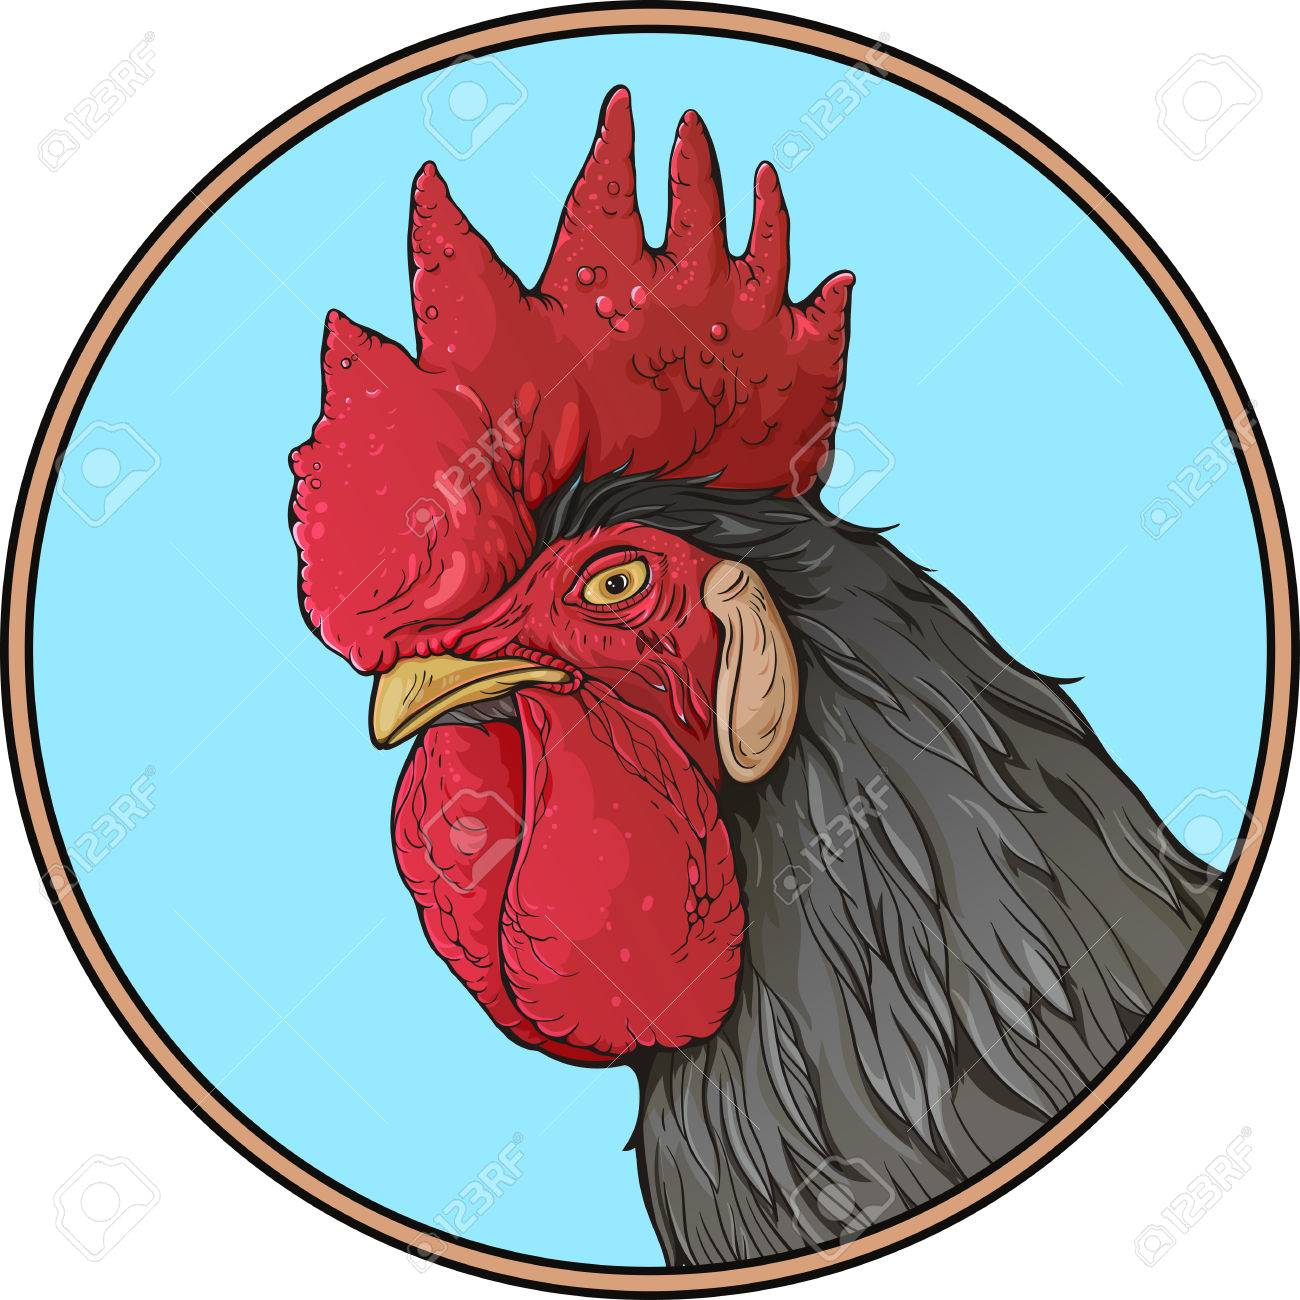 Colorful Image Of Rooster\'s Head With Black Feathers In A Simple ...